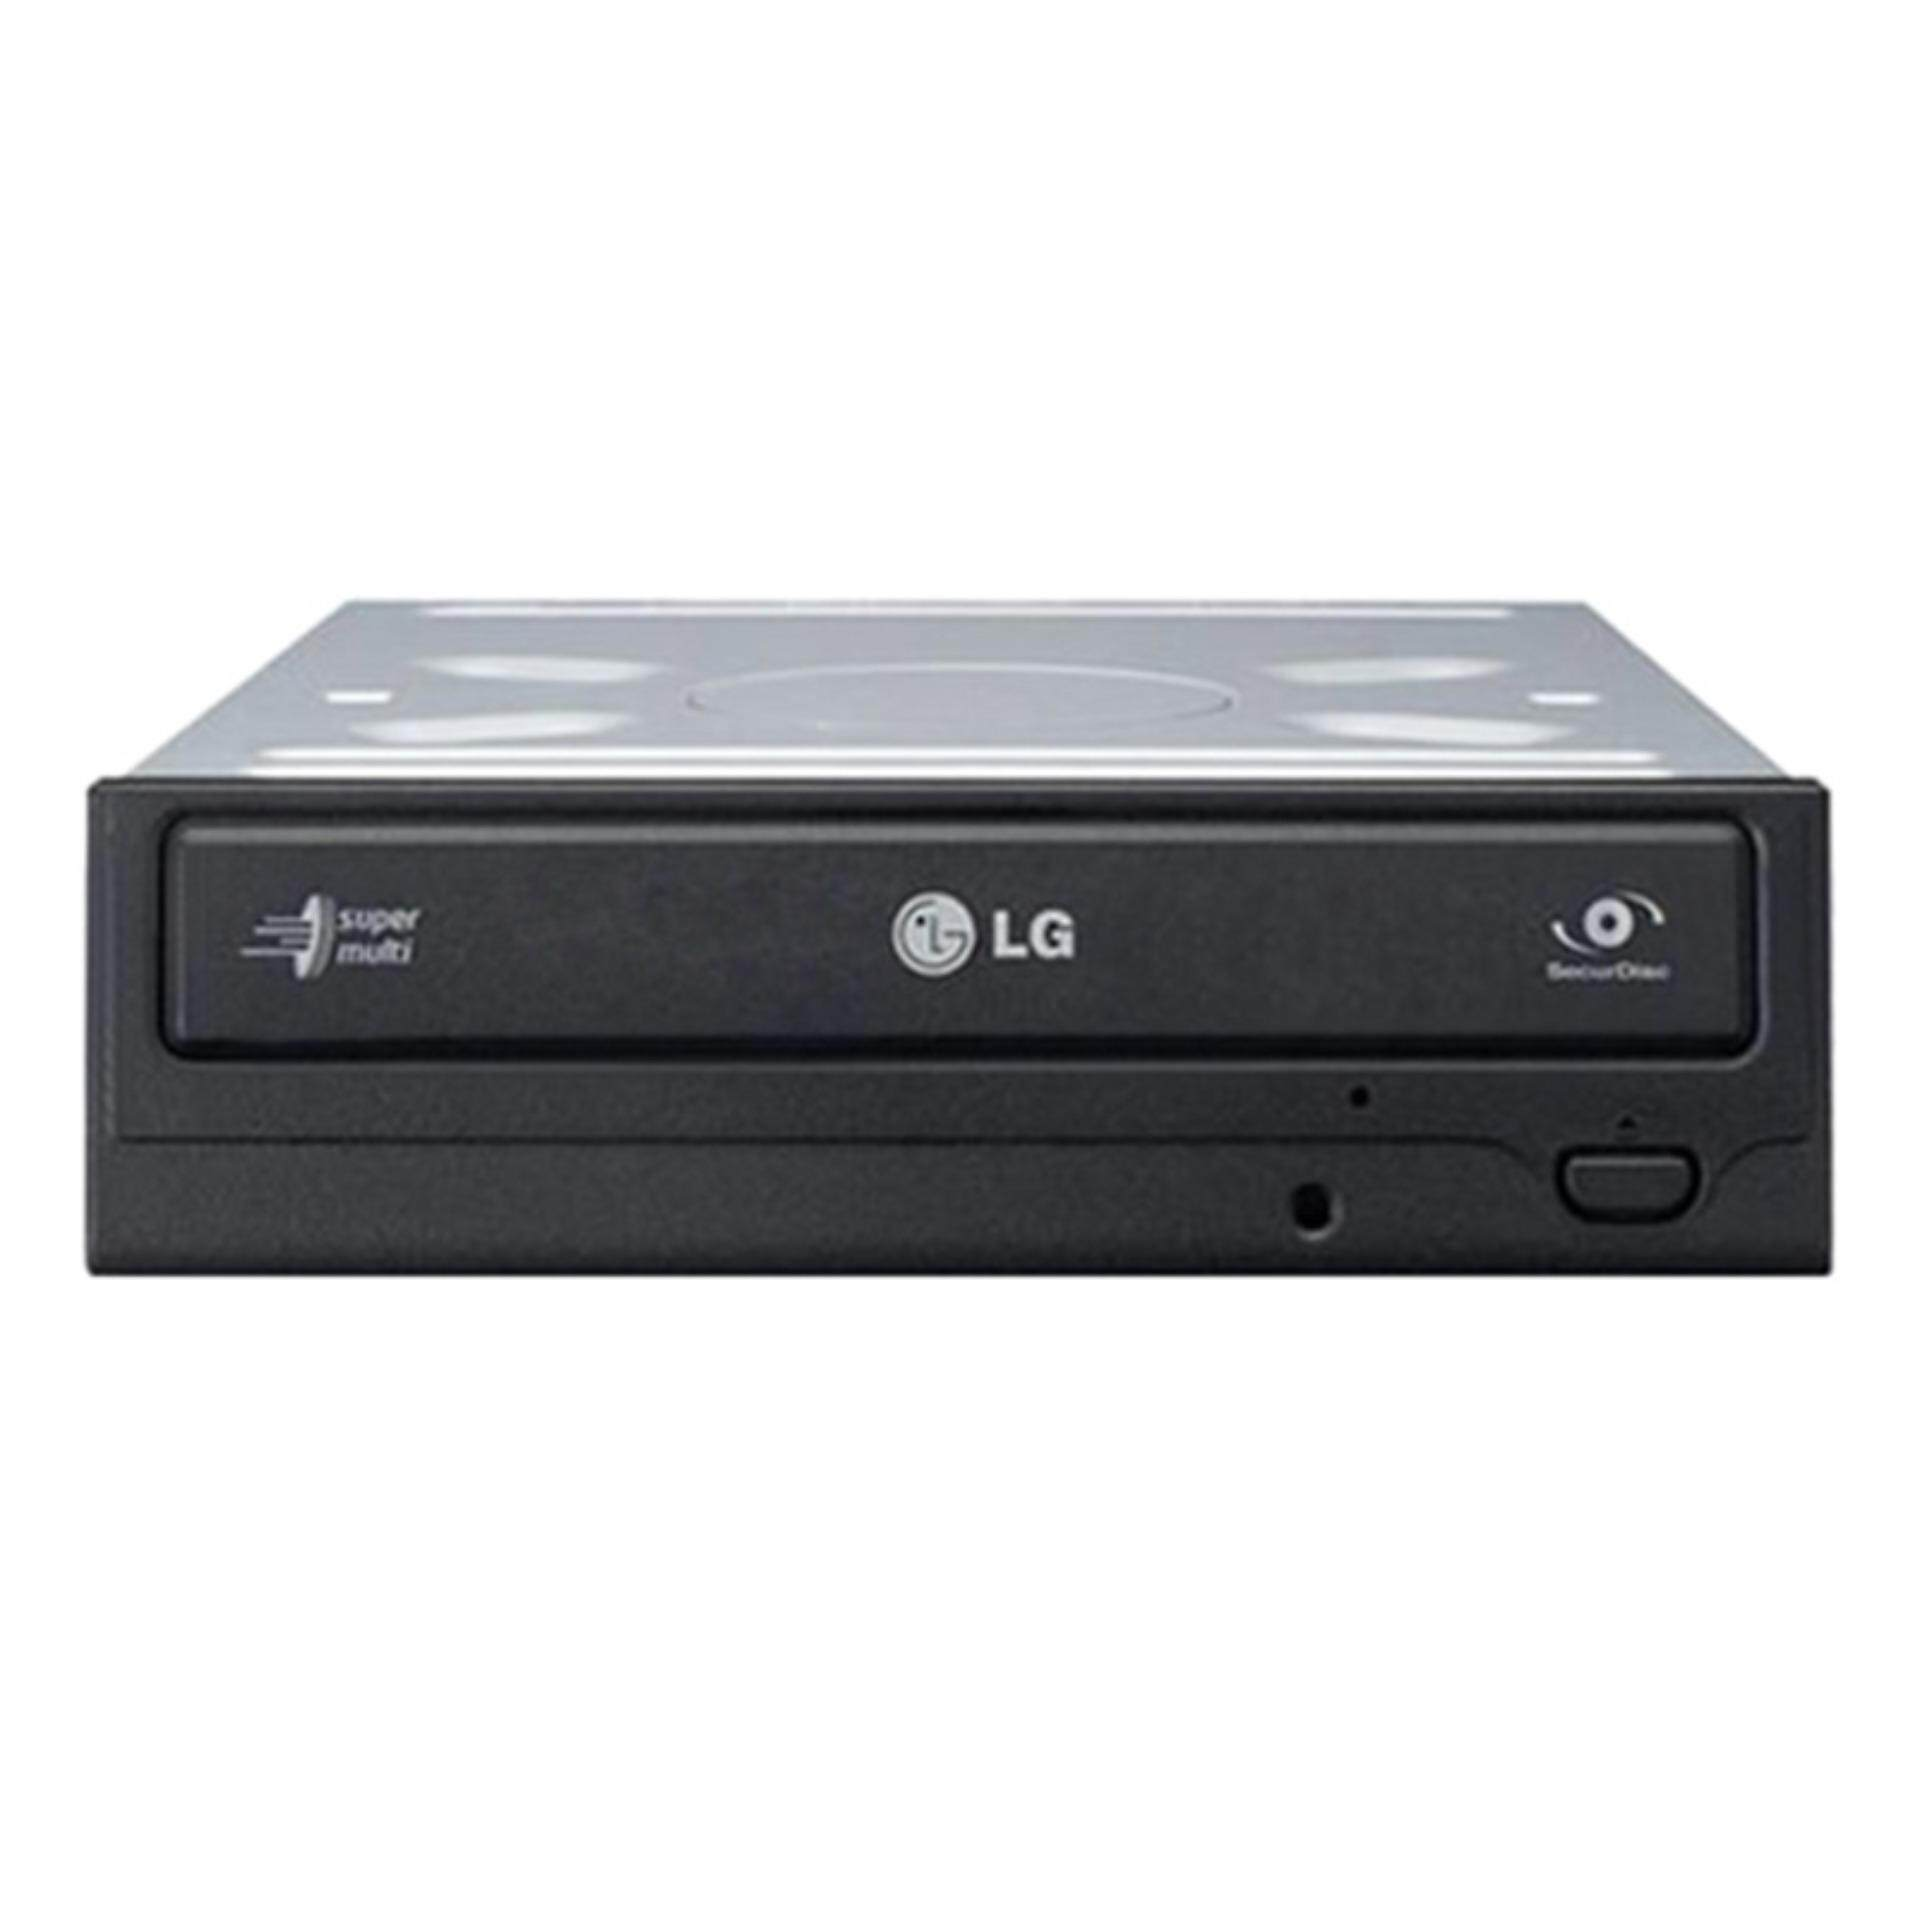 LG ODD Optical Drive Internal DVD-RW (SATA) 24X GH-24NSD1 (B/P) BLACK